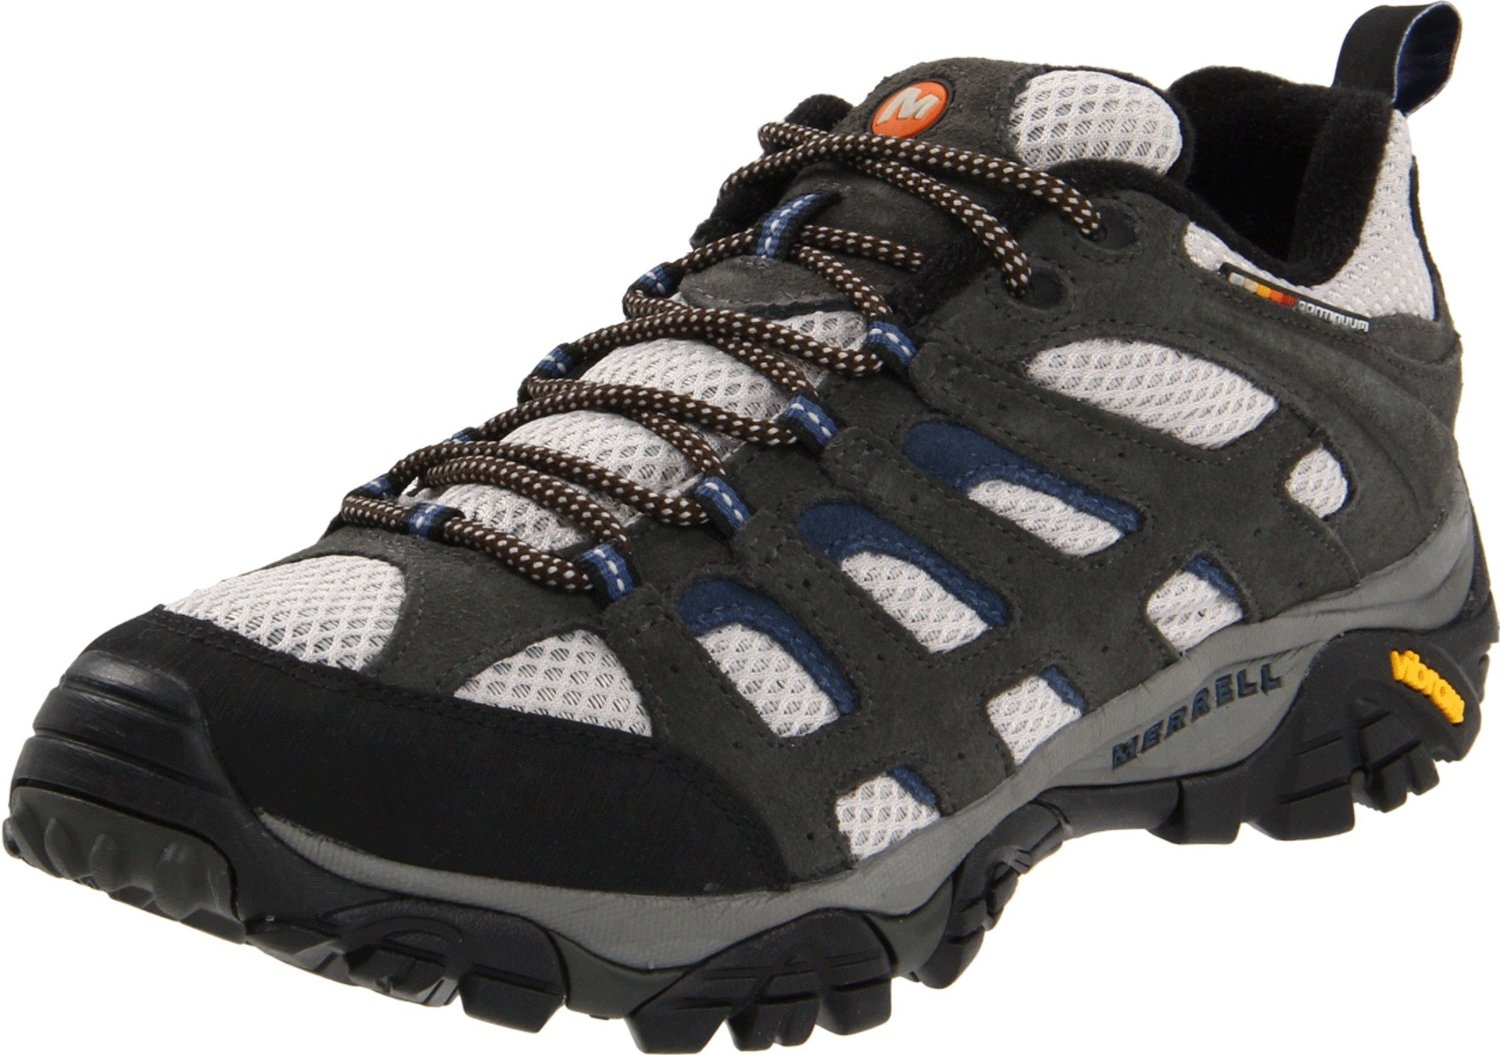 Thick Vibram Sole Leather Hiking Shoe